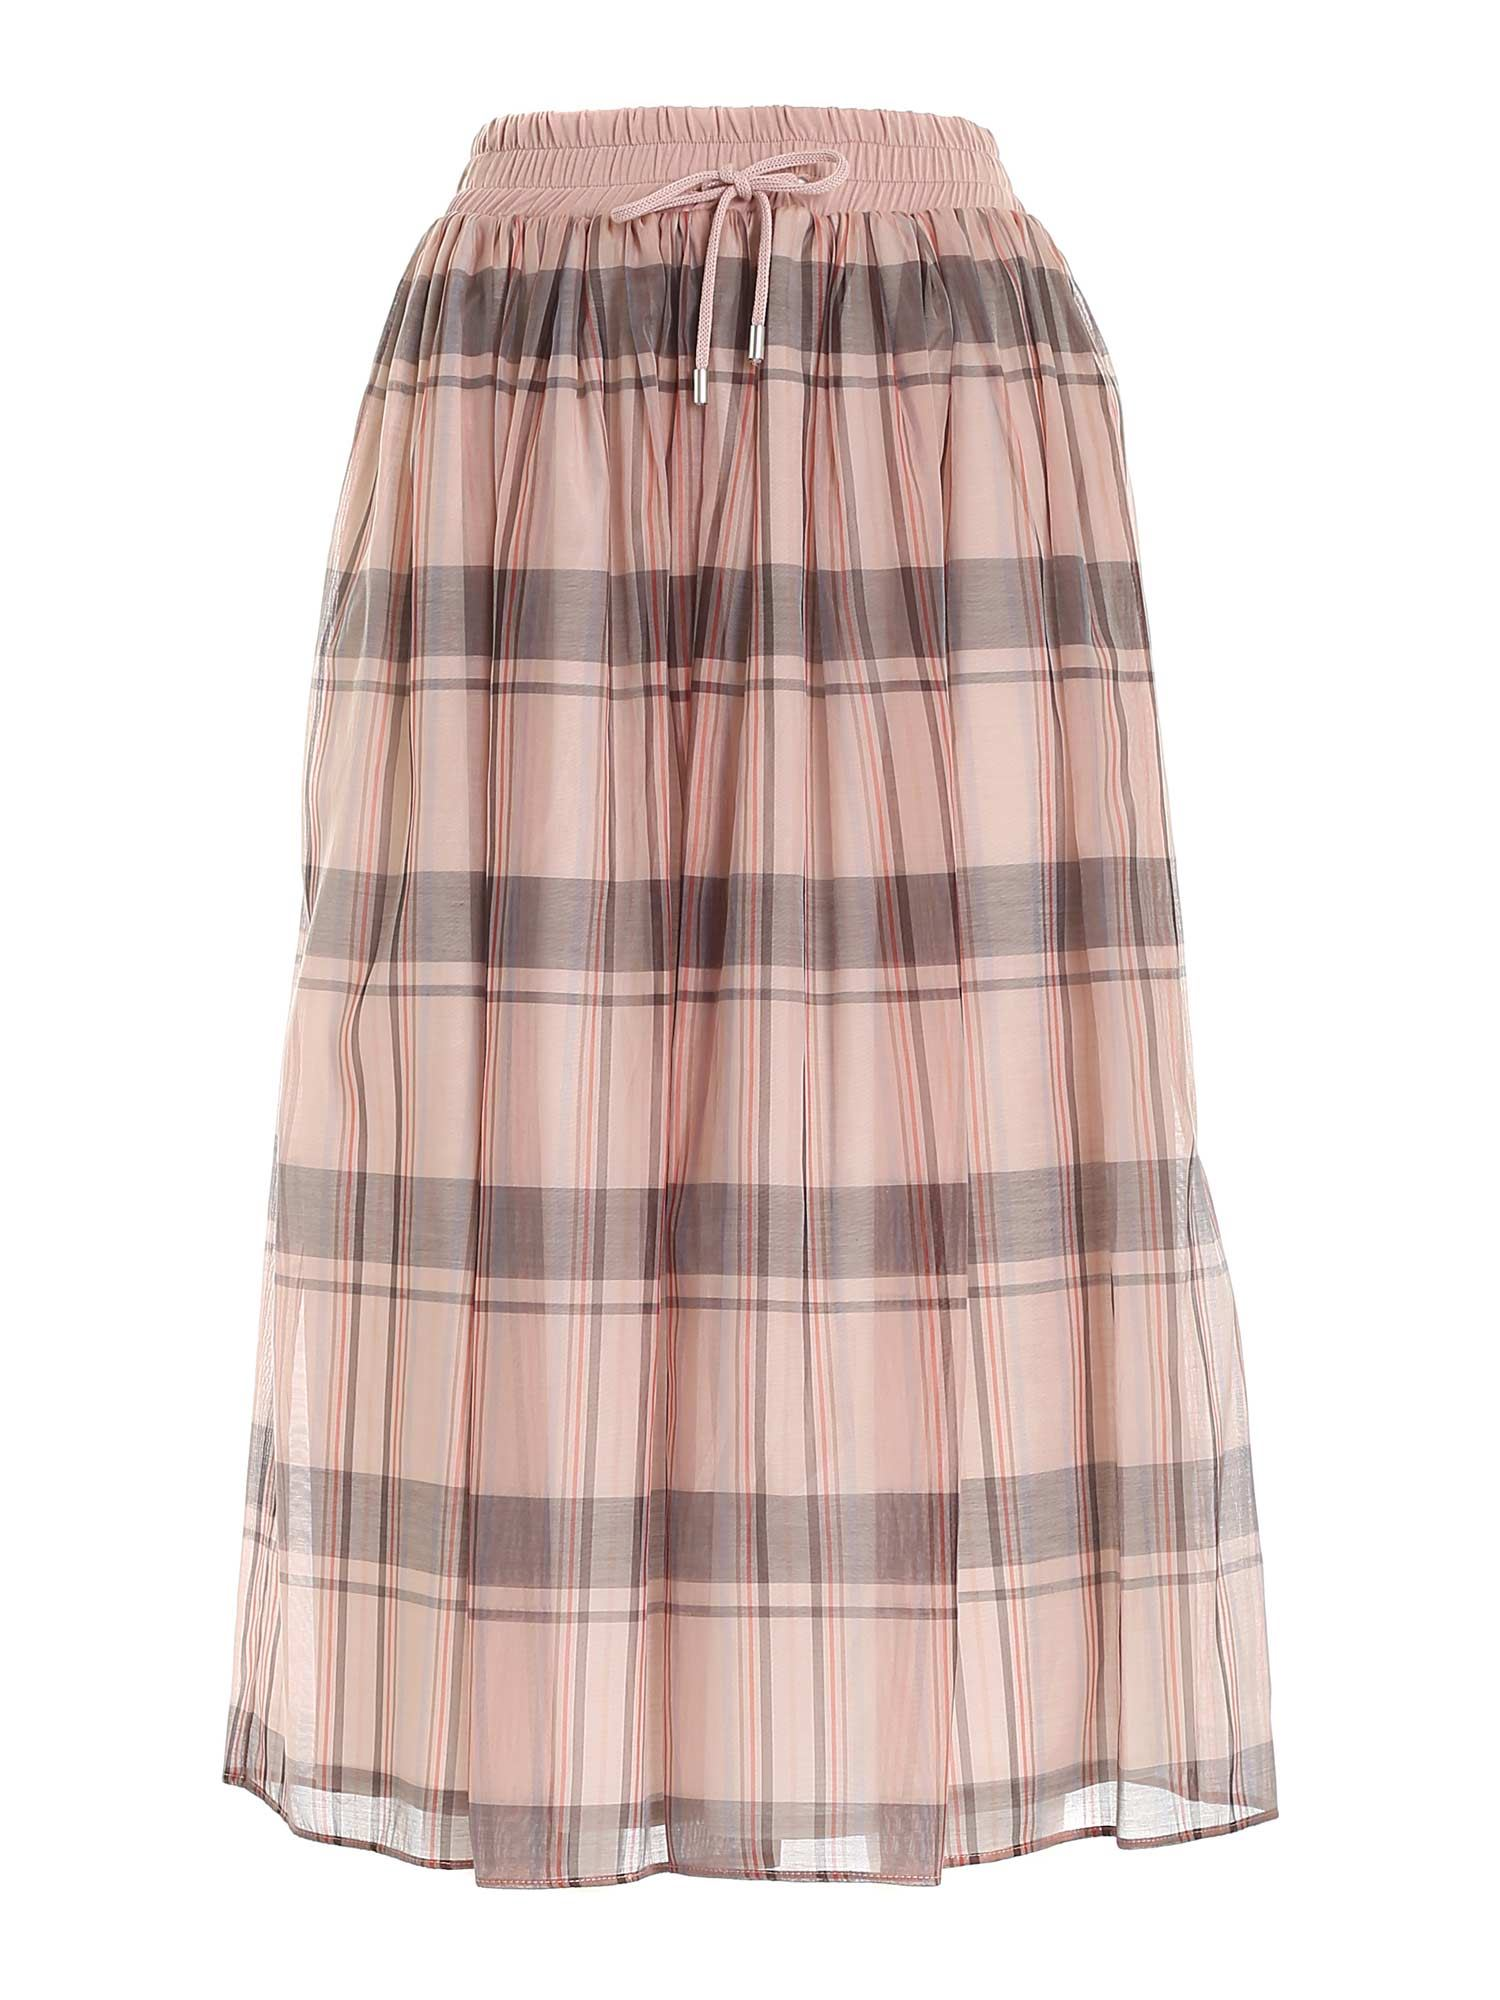 Le Tricot Perugia Silks LOOSE FIT SKIRT IN PINK AND GREY